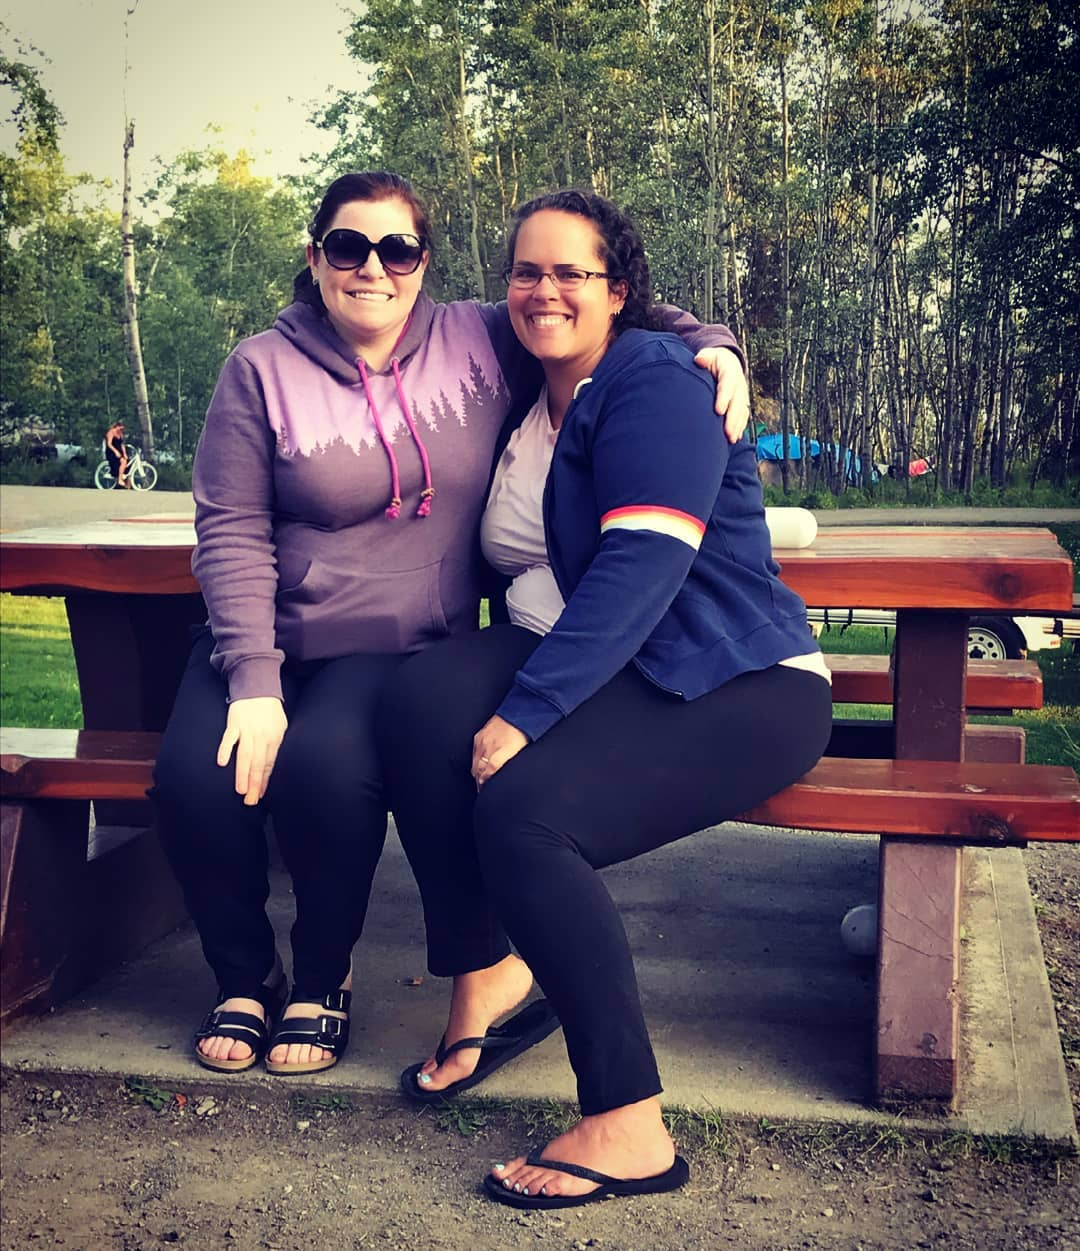 Camping with Friends - Two Ladies on Picnic Table